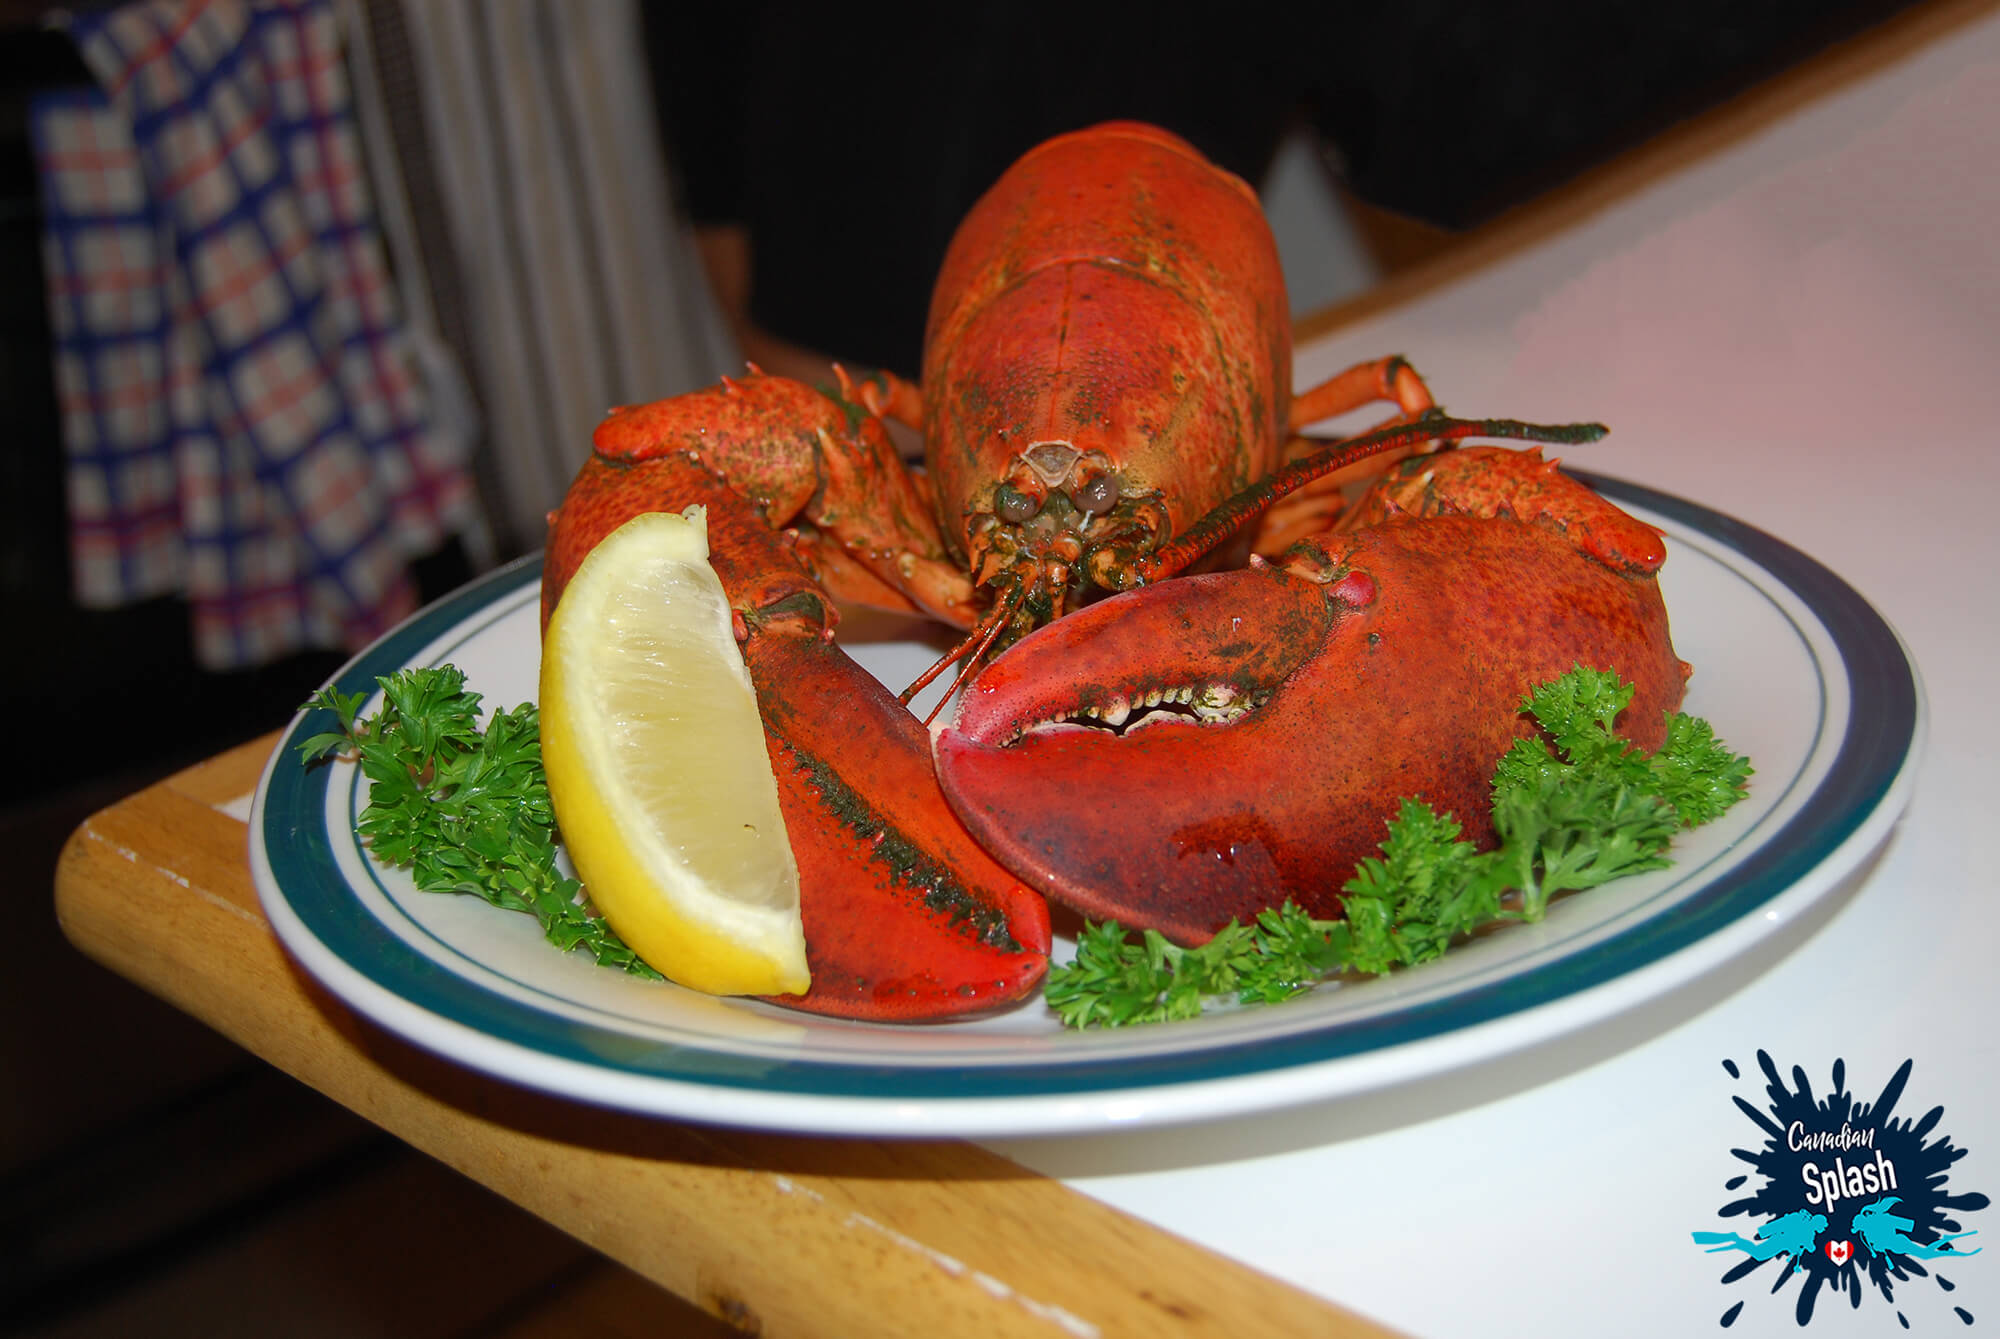 A Cooked Lobster Dinner In Halifax, Nova Scotia